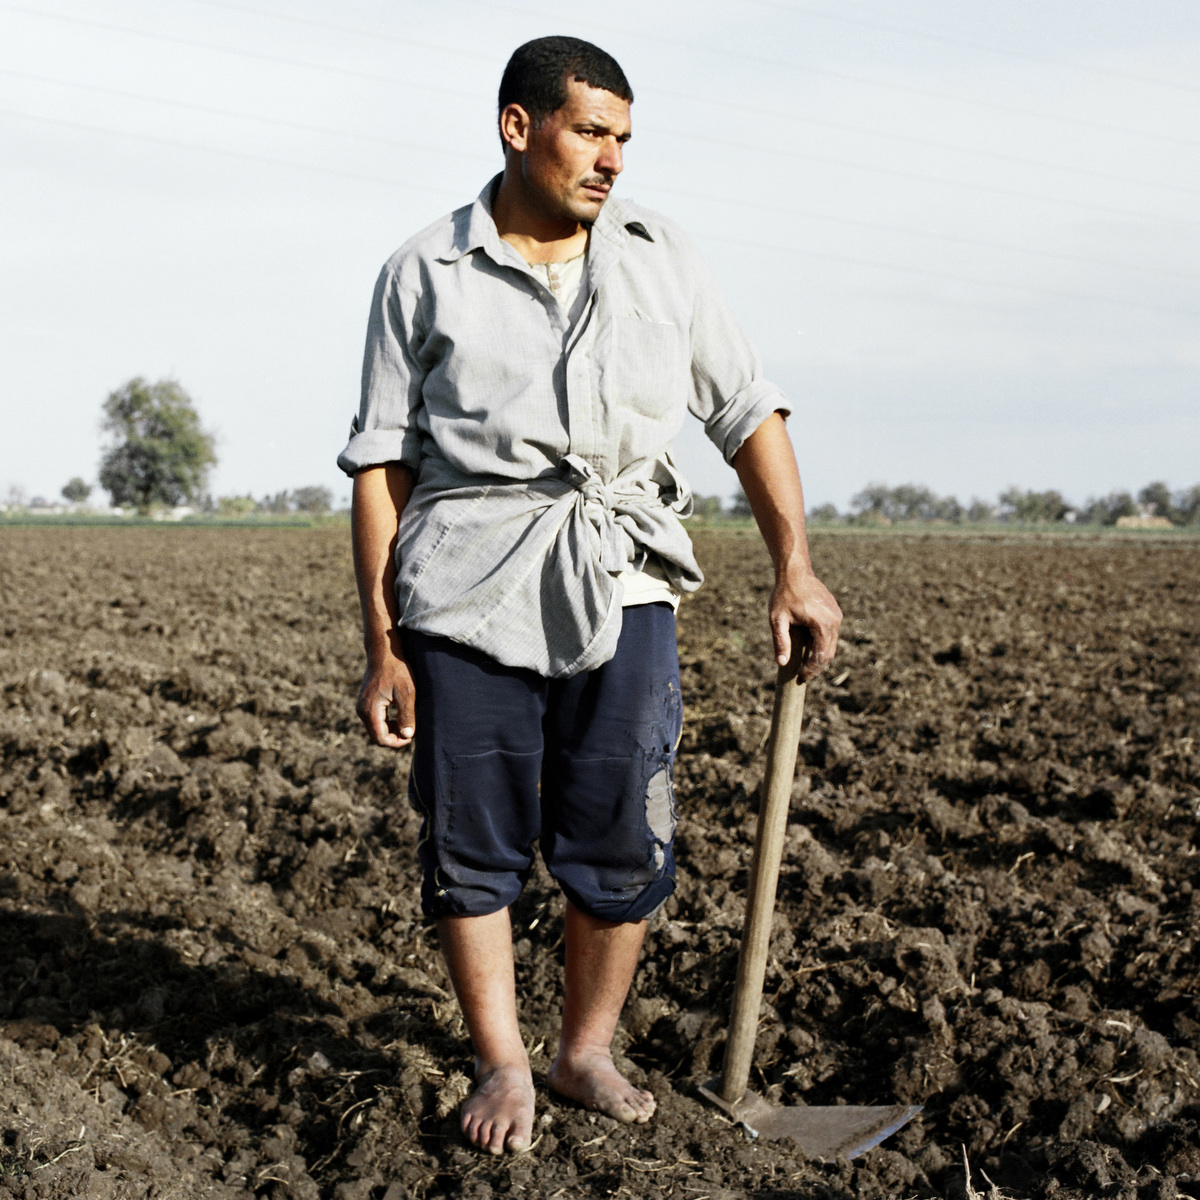 A farmer pauses while working in the field.